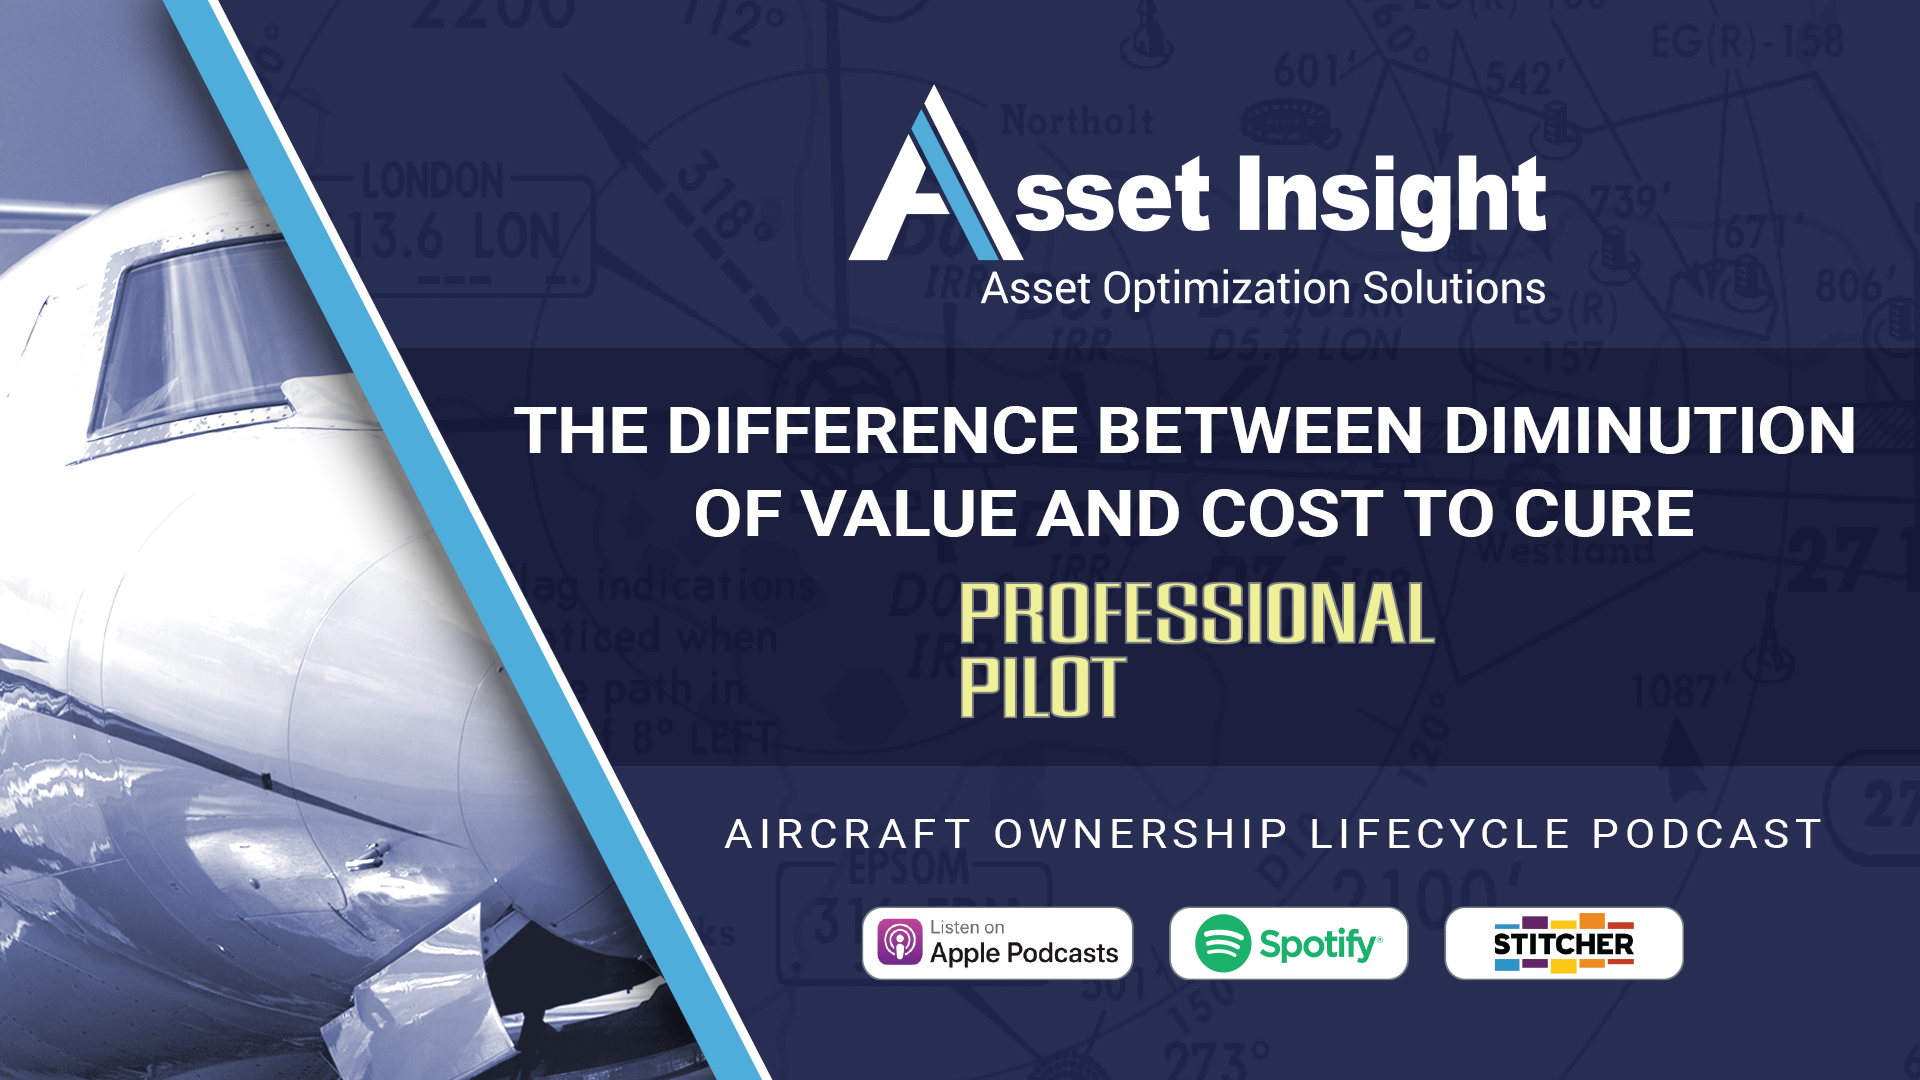 The Difference Between Diminution of Value and Cost to Cure